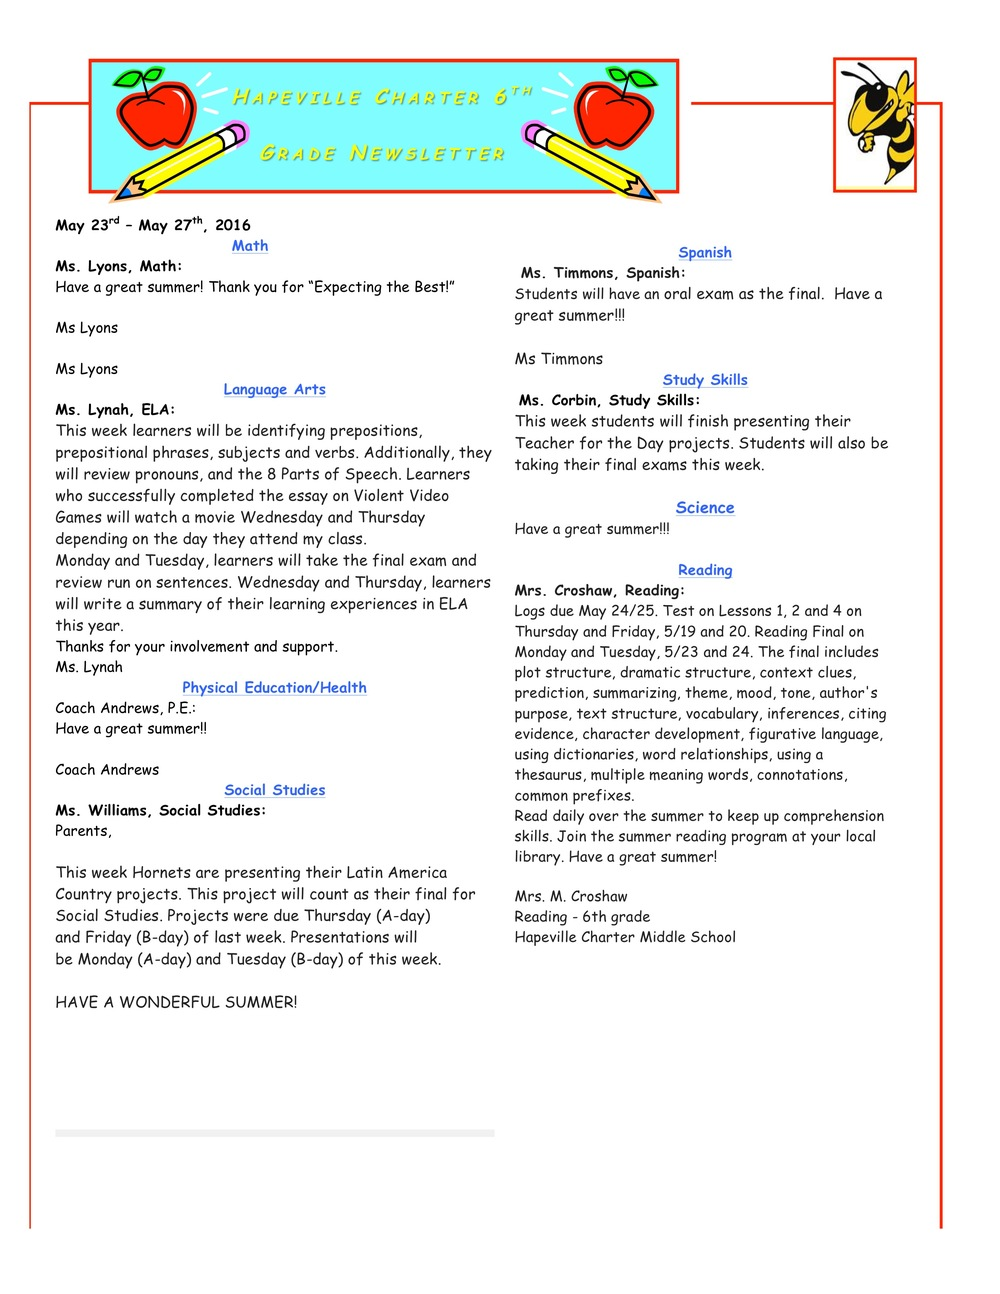 Newsletter Image6th Grade Newsletter 5-23-2016.jpeg